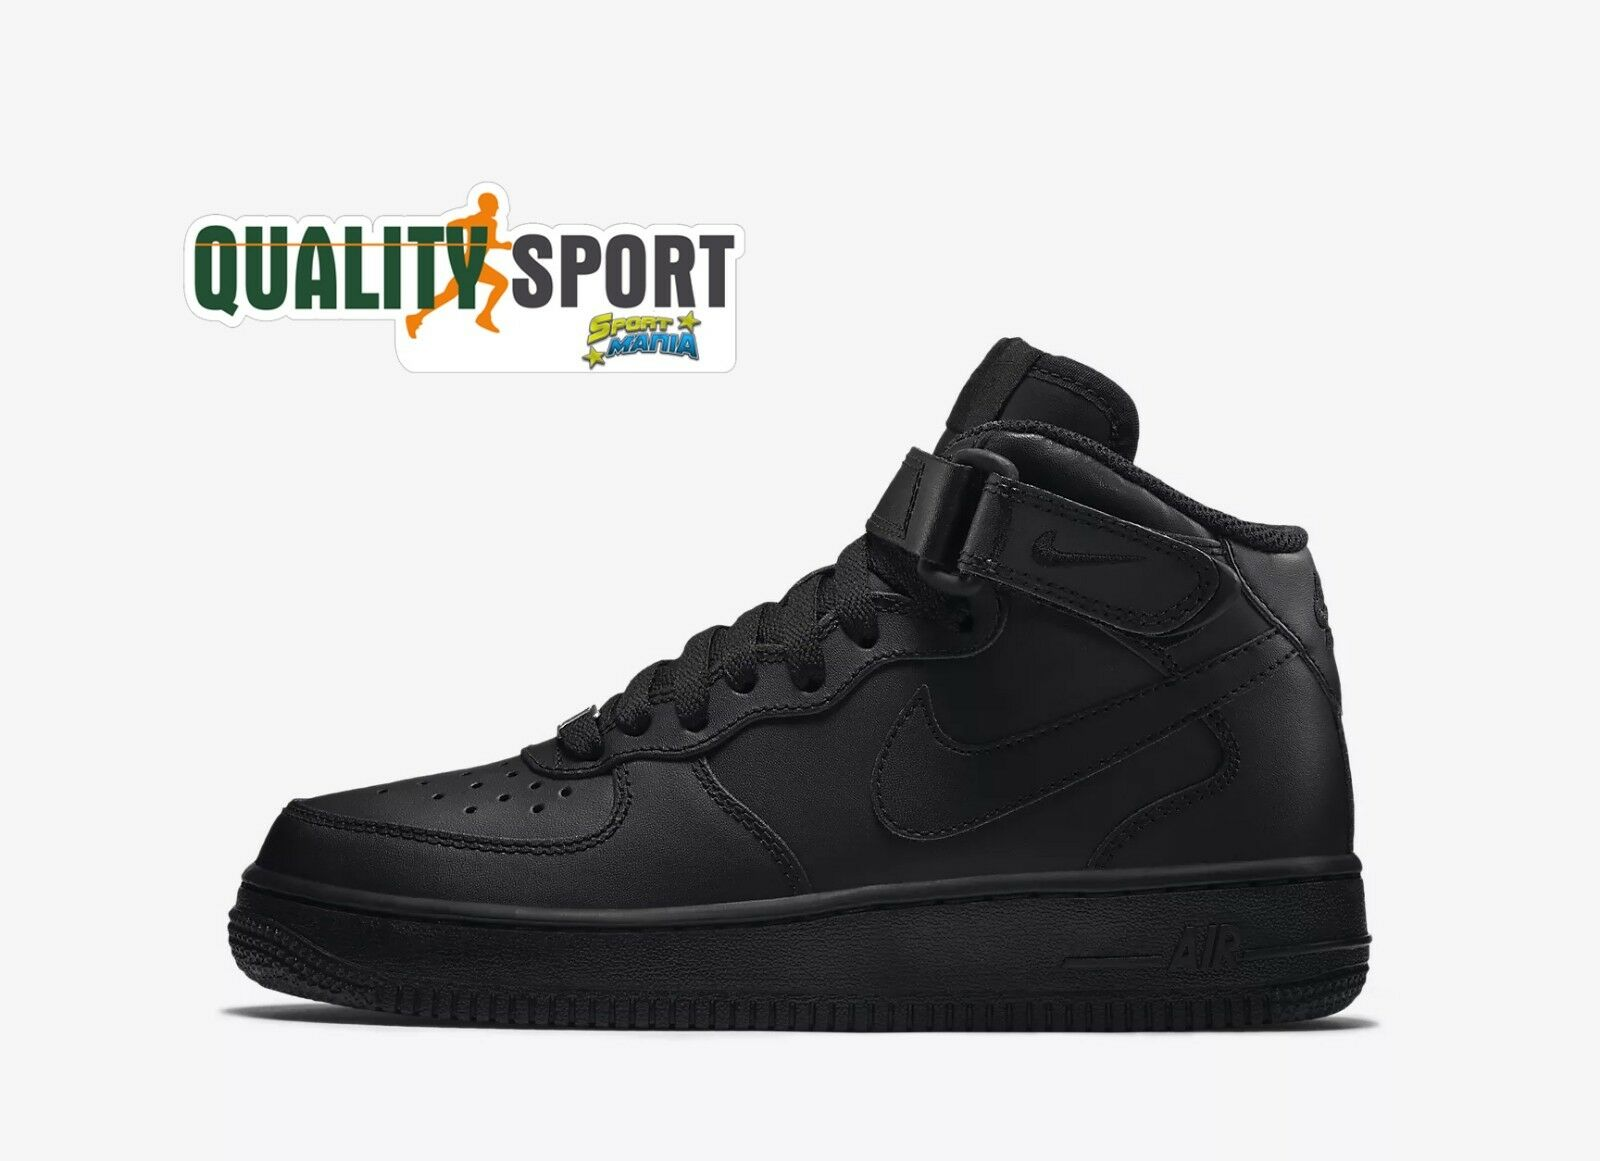 Nike Donna Air Force 1 Mid Nero Scarpe Shoes Ragazzo Donna Nike Sneakers 314195 004 2018 7de163